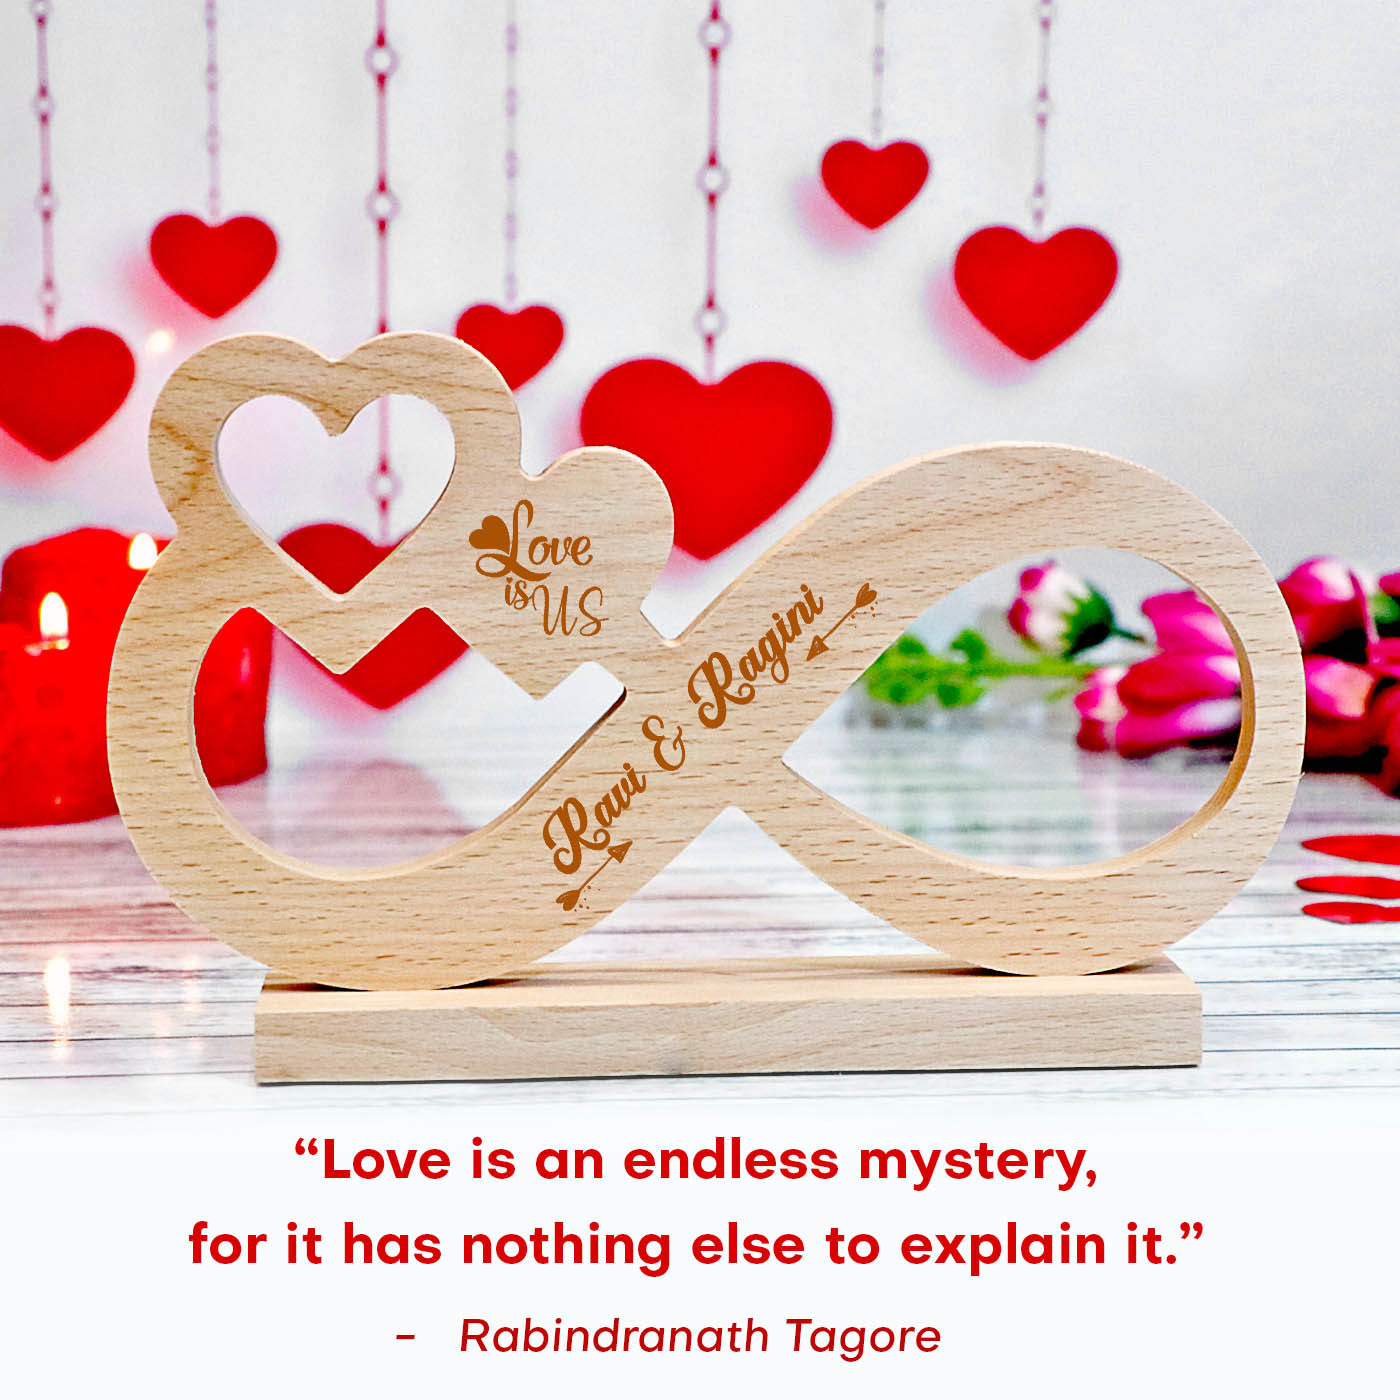 rabindranath tagore love quote